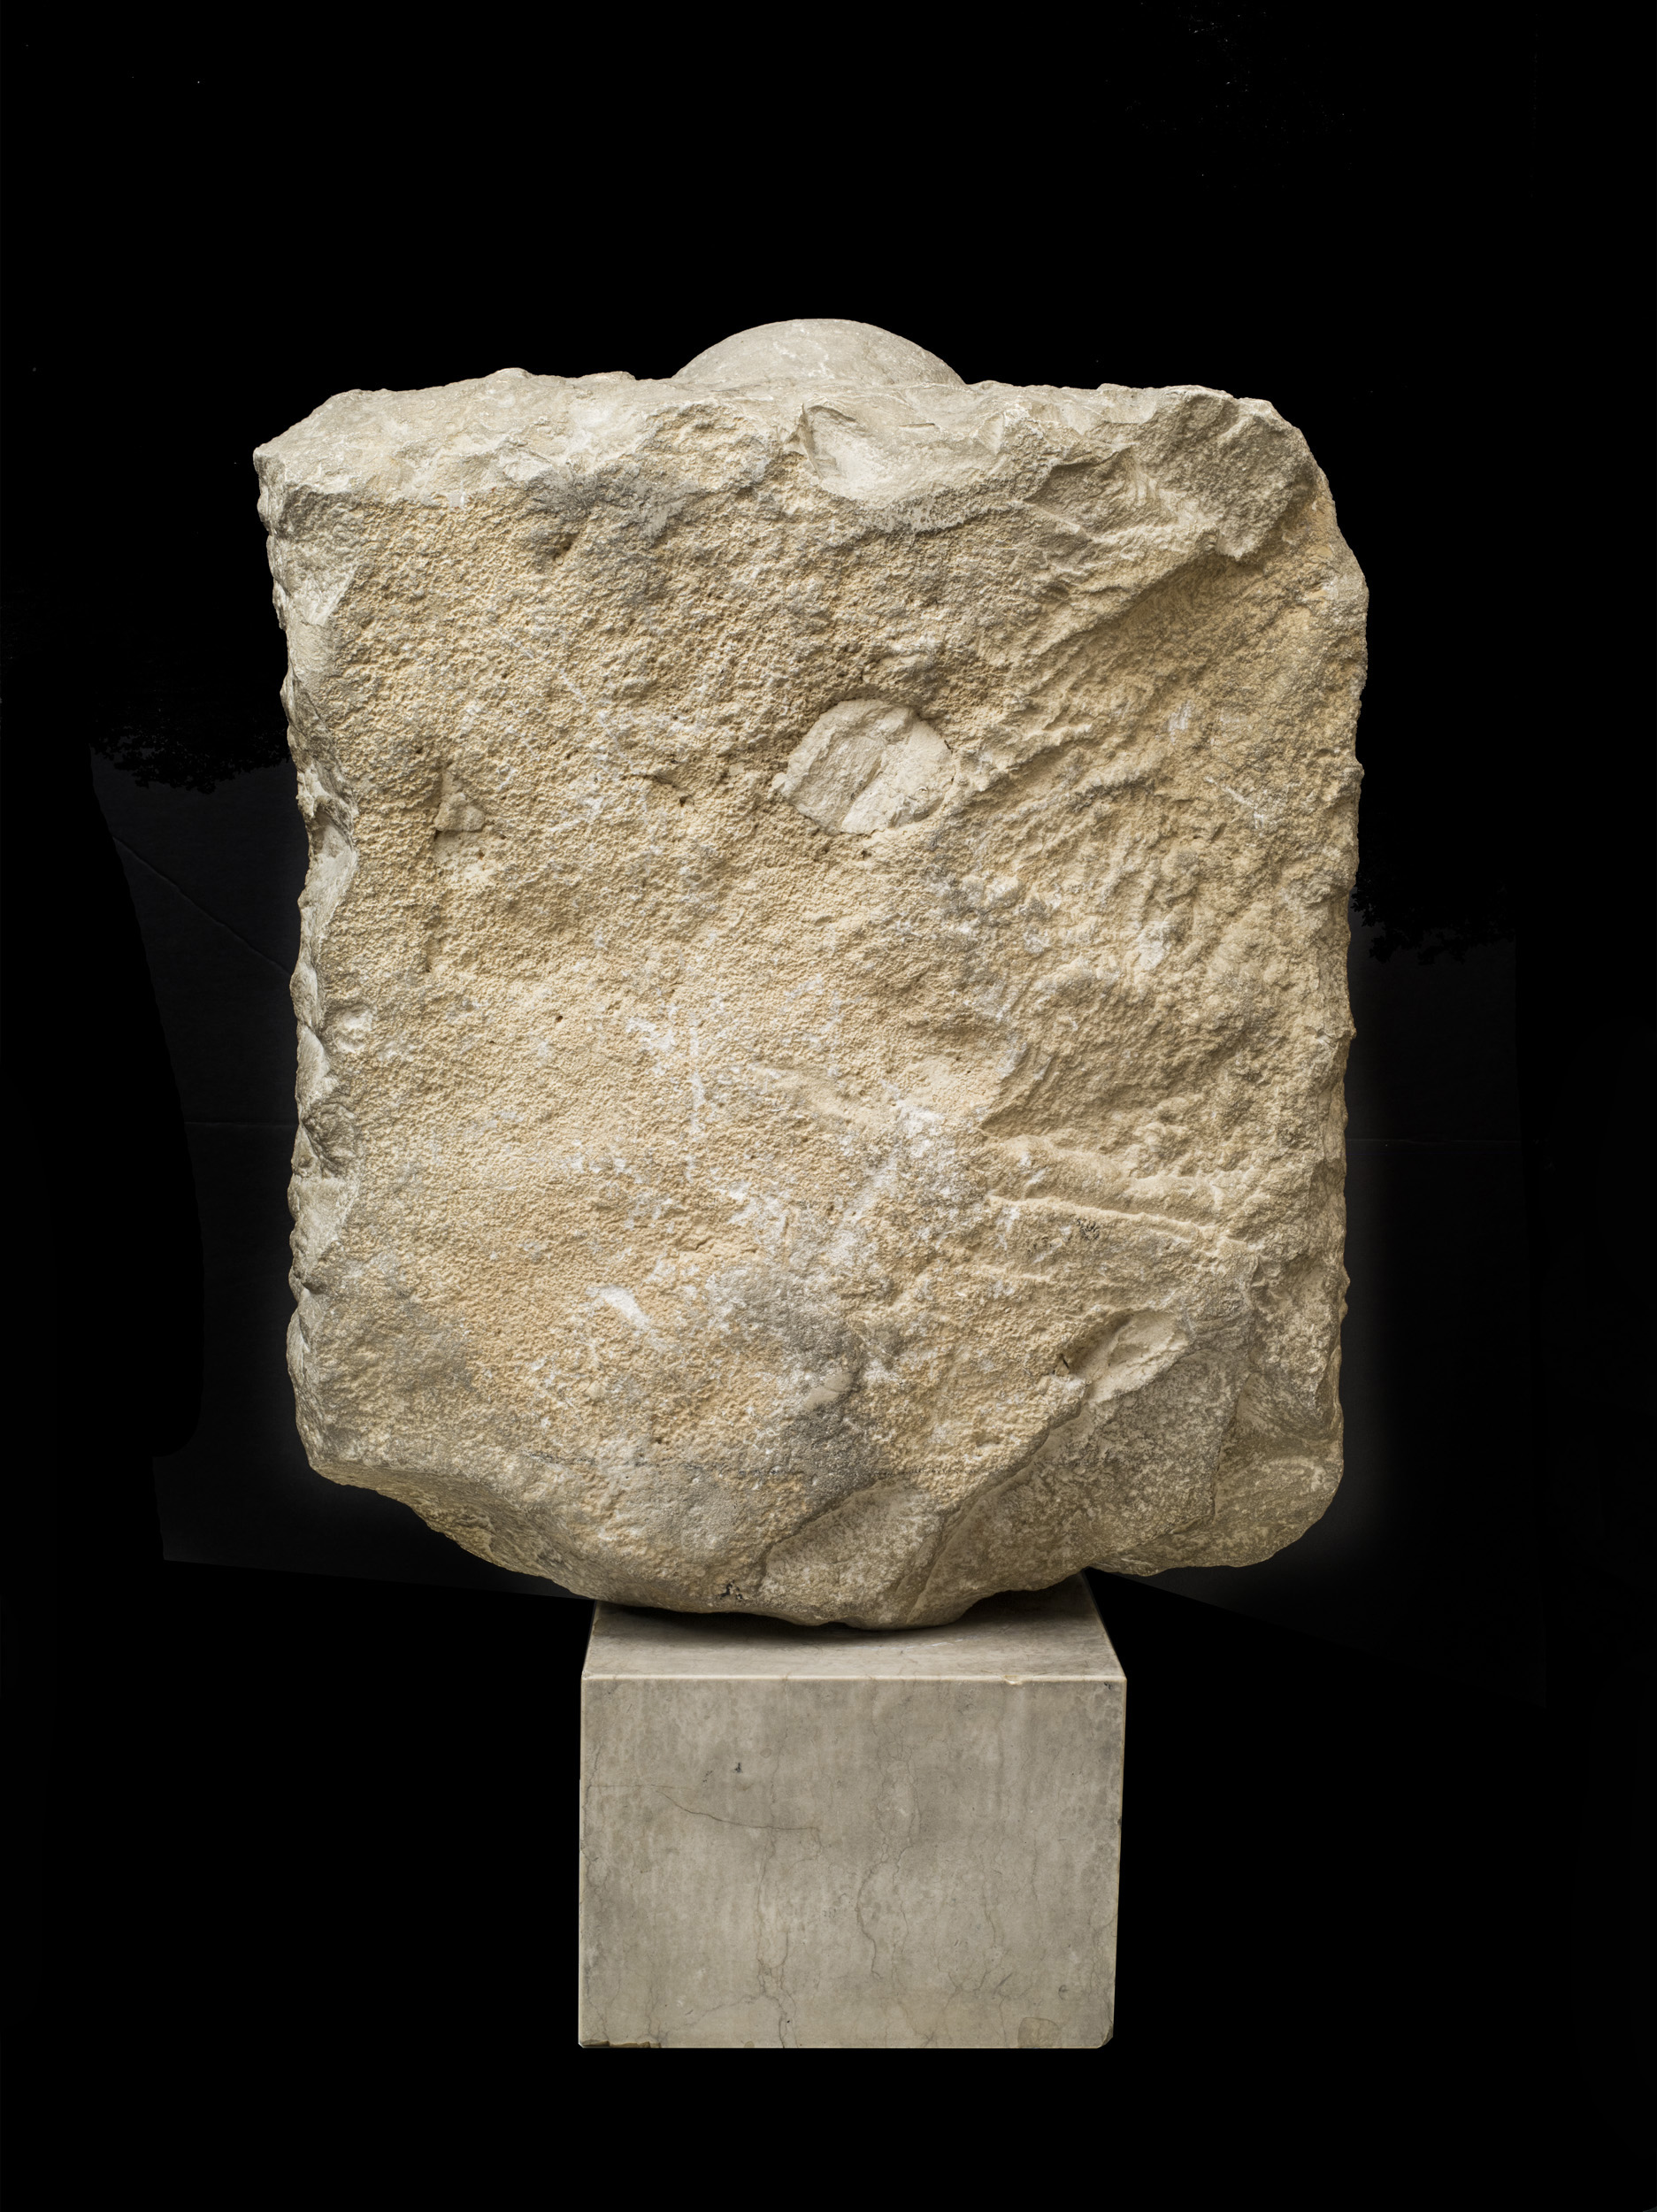 A Palmyrene Stele of a Woman - View of Reverse